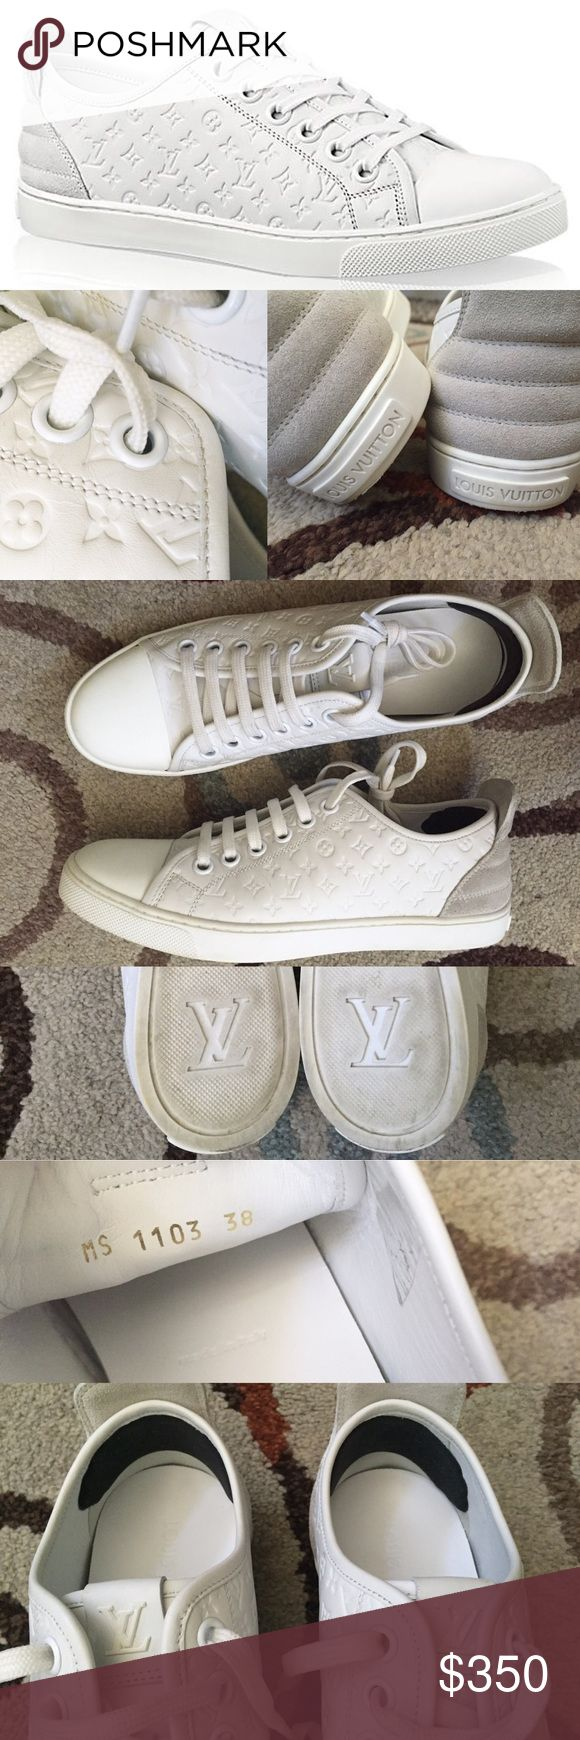 Louis Vuitton Punchy Sneakers Women's Shoes 38 8 100% authentic. Pre-owed in excellent condition. Clean, no defect, no smell.., I love them. Super stylist. Must see to appreciate. Fit well in my narrow feet, sole measured 10in long, I use heel huggings in most of my flats, so they were tapped inside of this sneakers as well - see photo. Louis Vuitton Shoes Sneakers